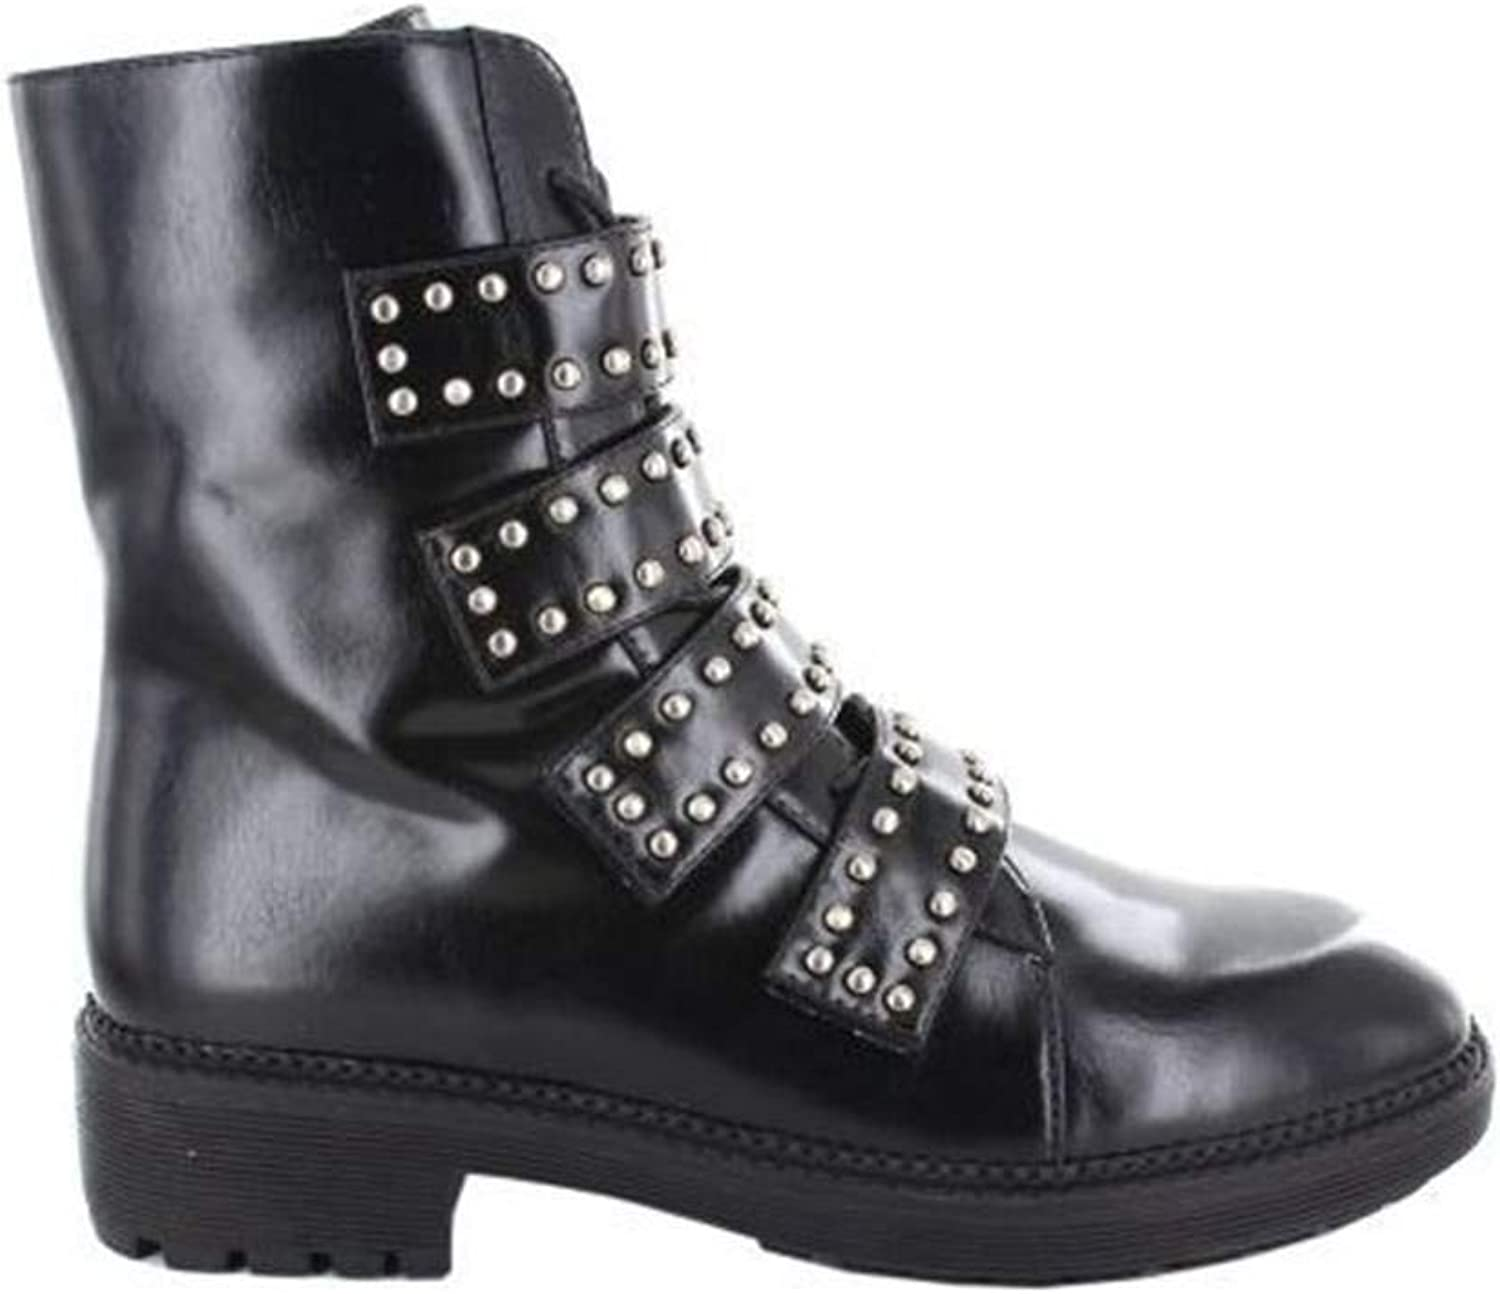 Menbur Amphibious Biker Boot shoes Leather Studs Woman